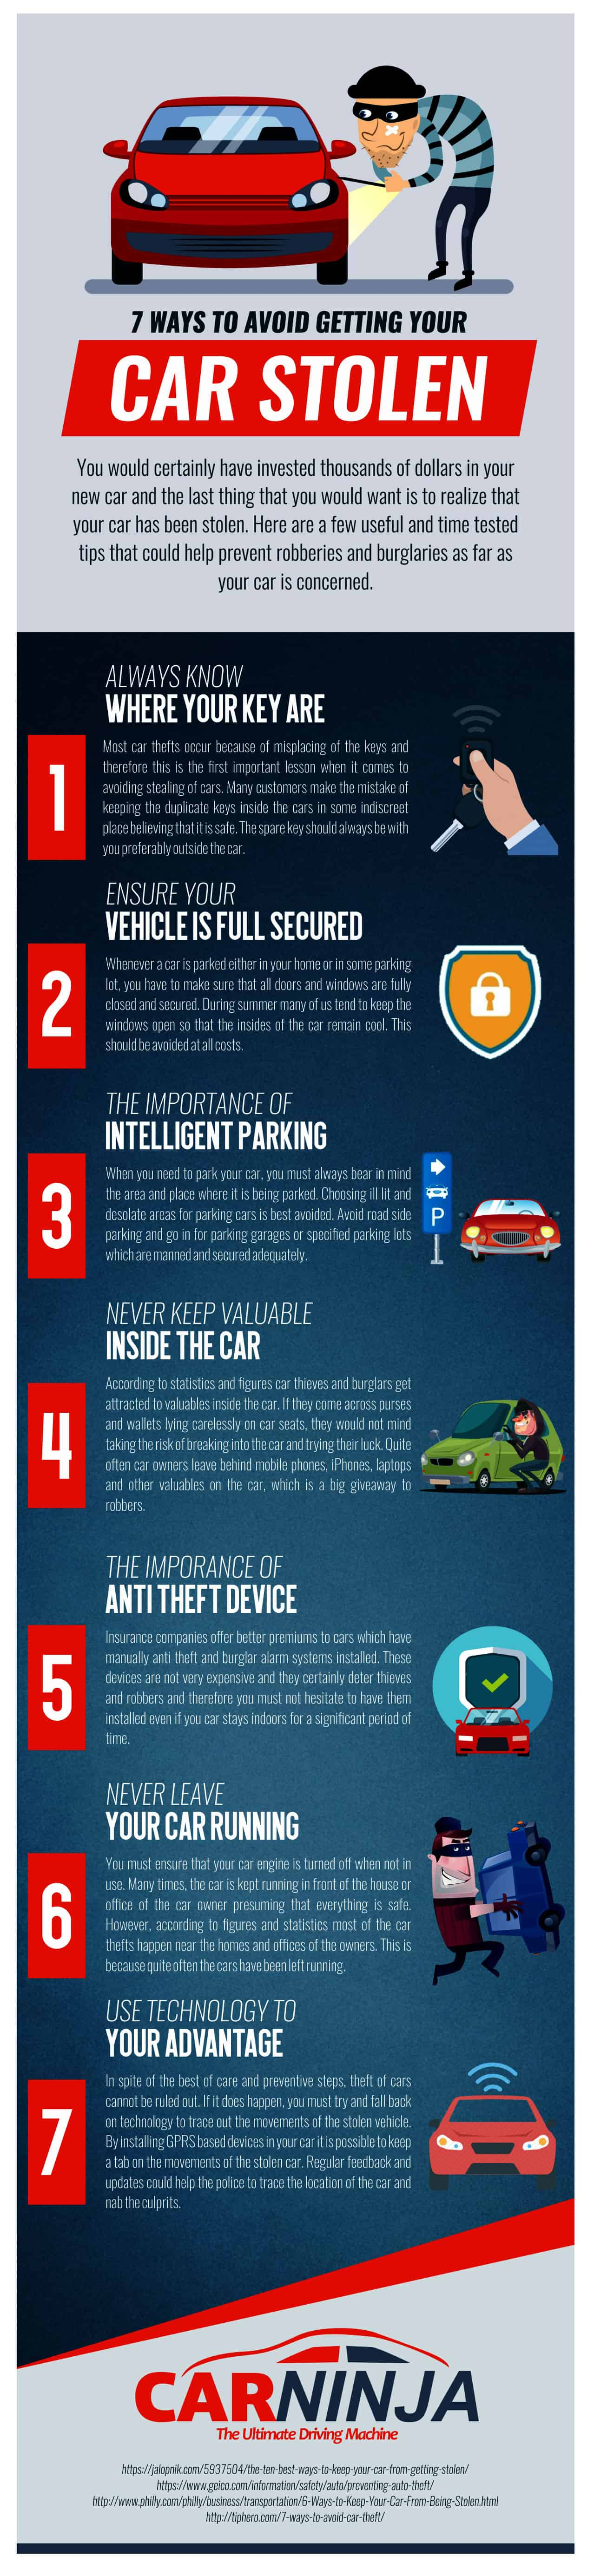 7 Ways To Avoid Getting Your Car Stolen